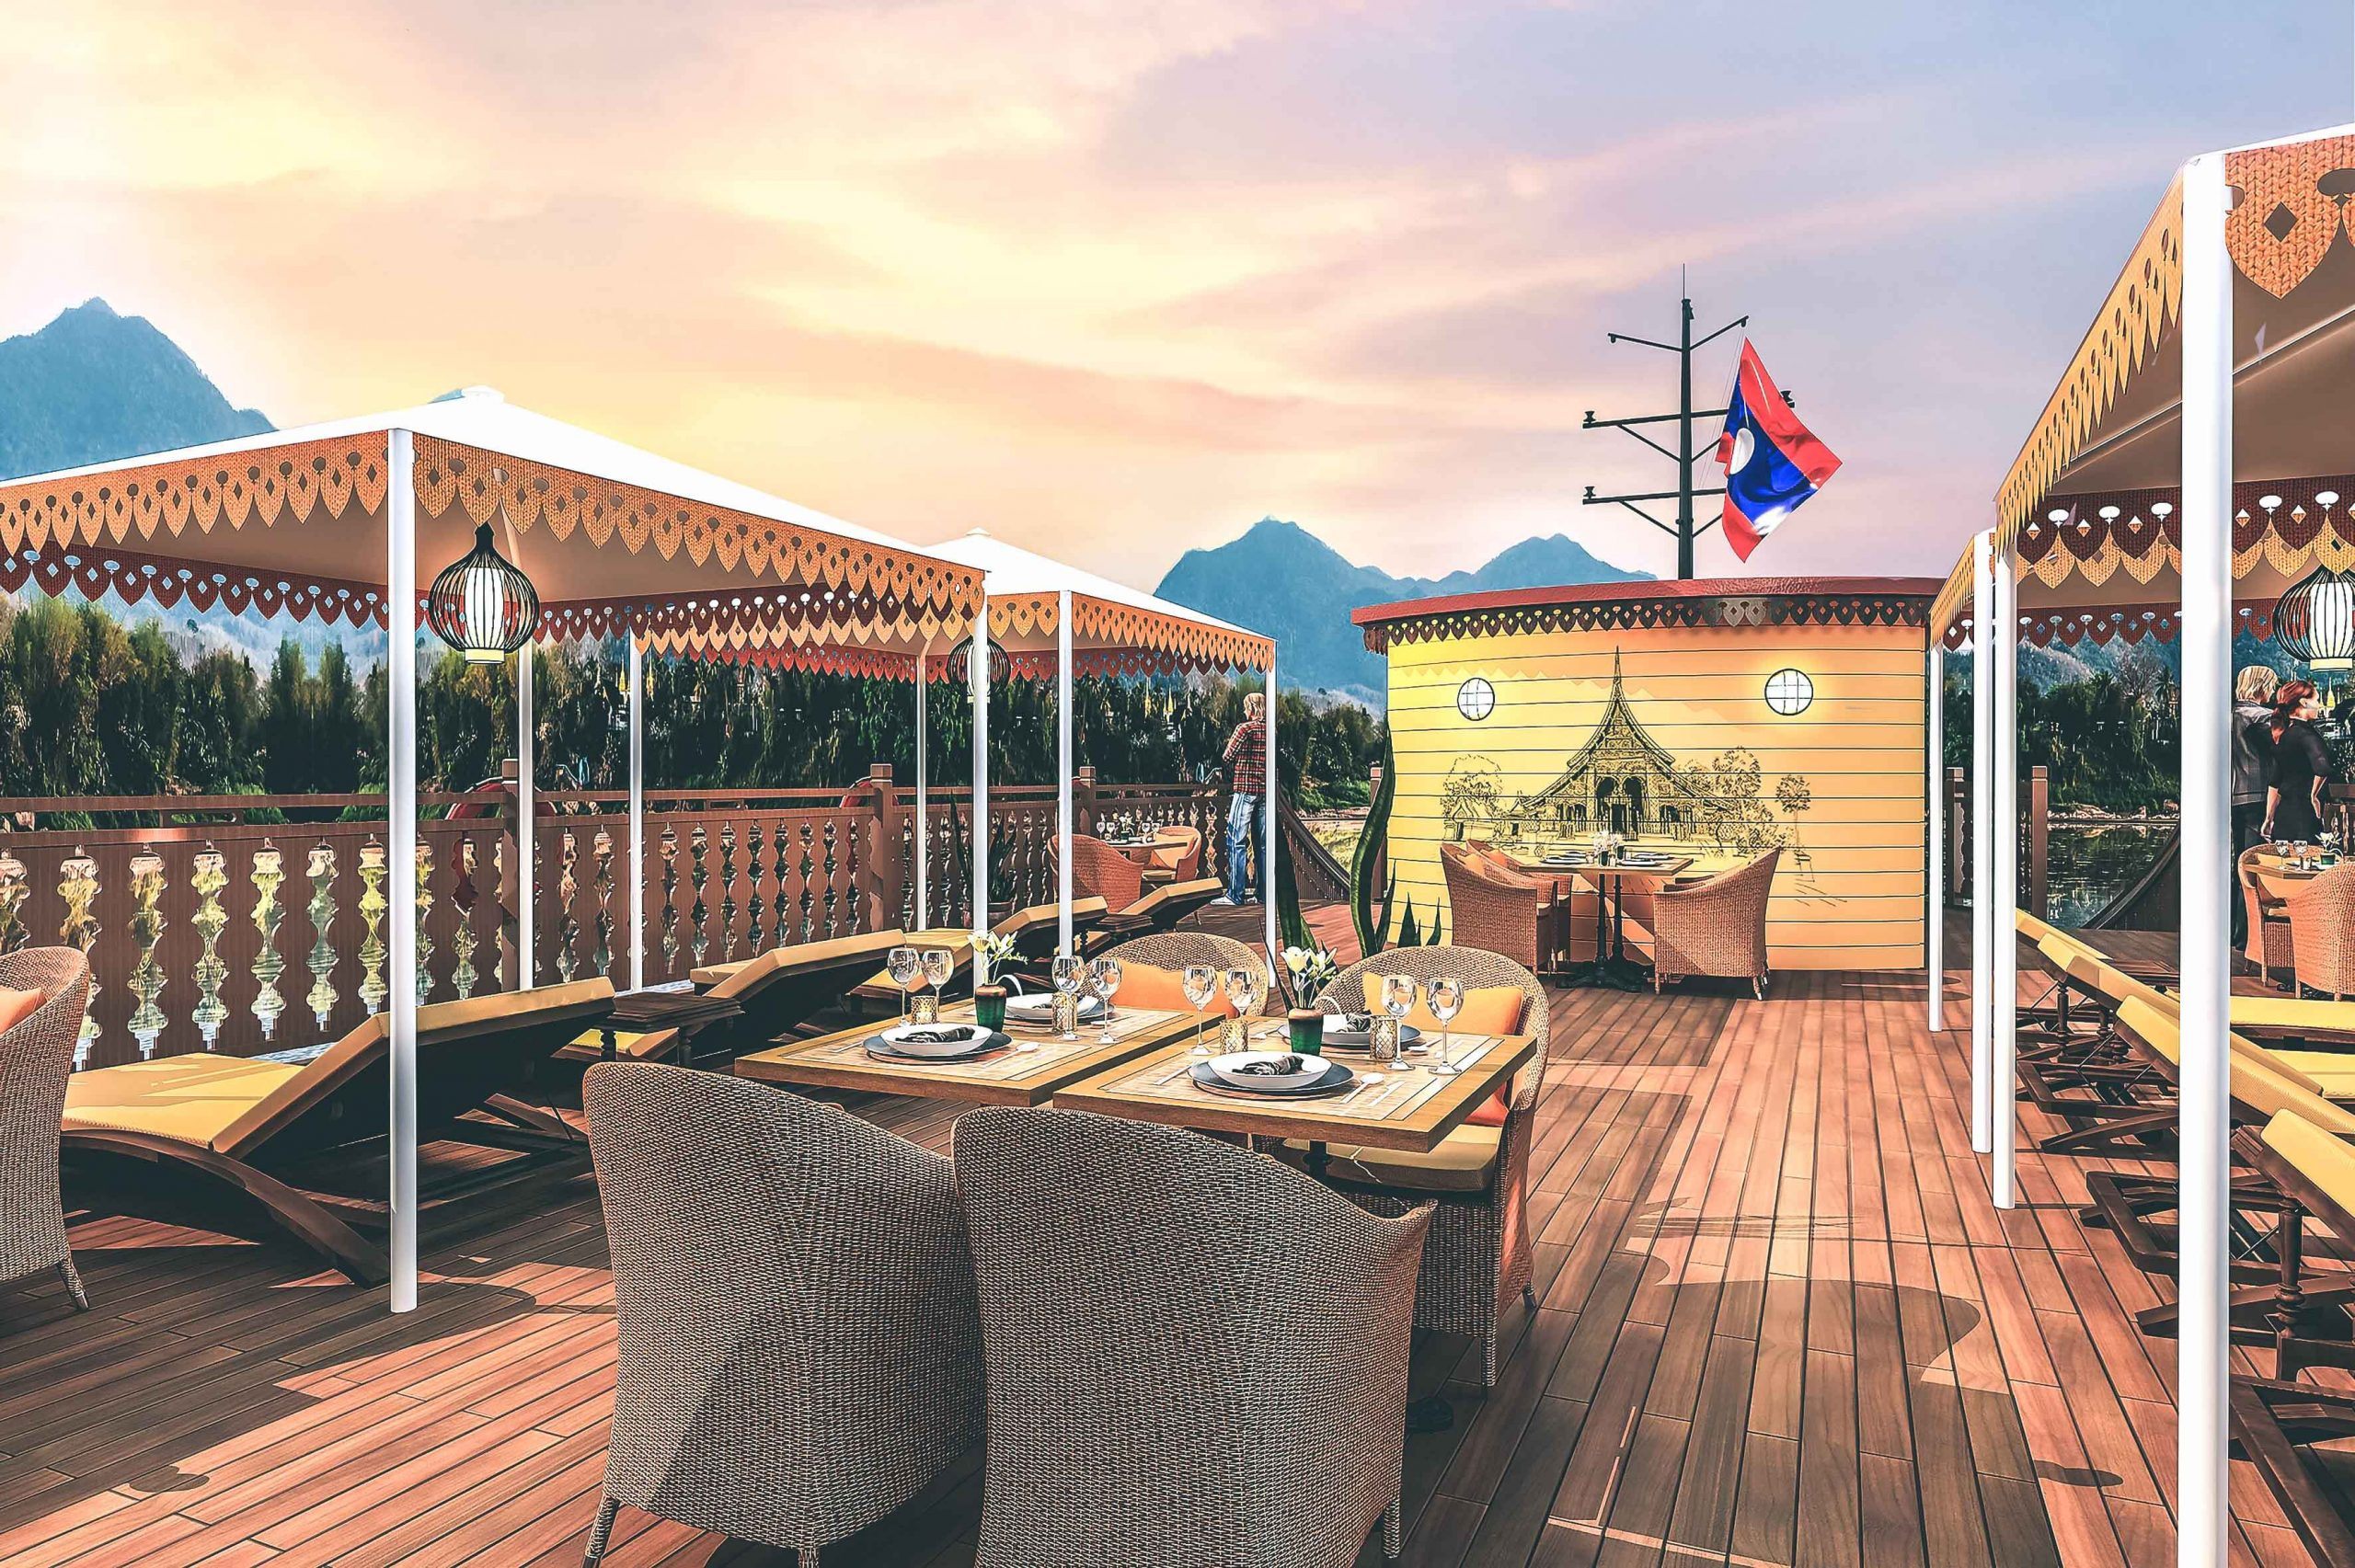 Anouvong's Terrace Deck with shaded loungers and dining tables